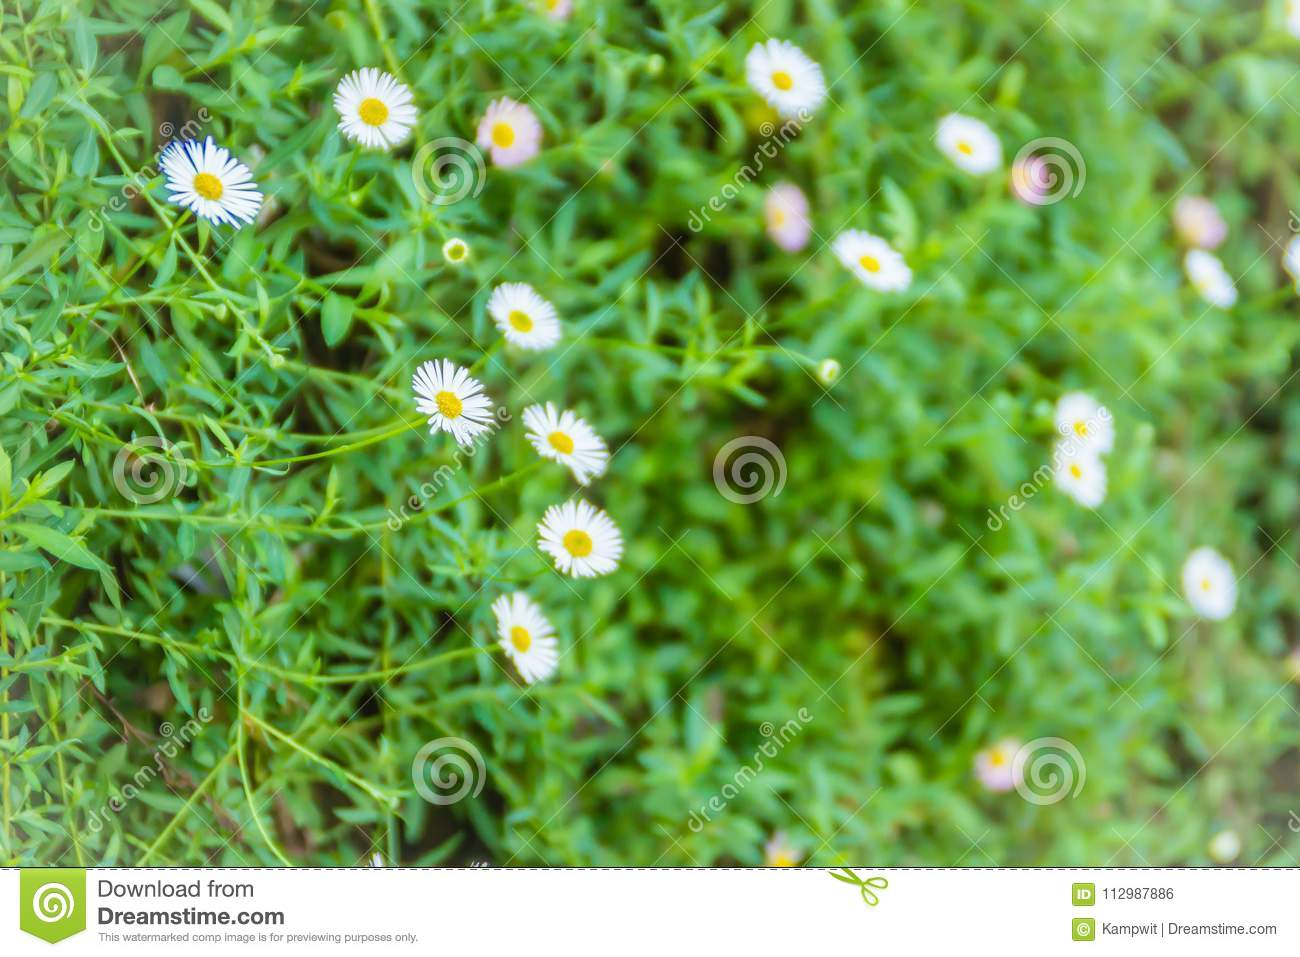 Daisy flowers blooming on green leaves background.